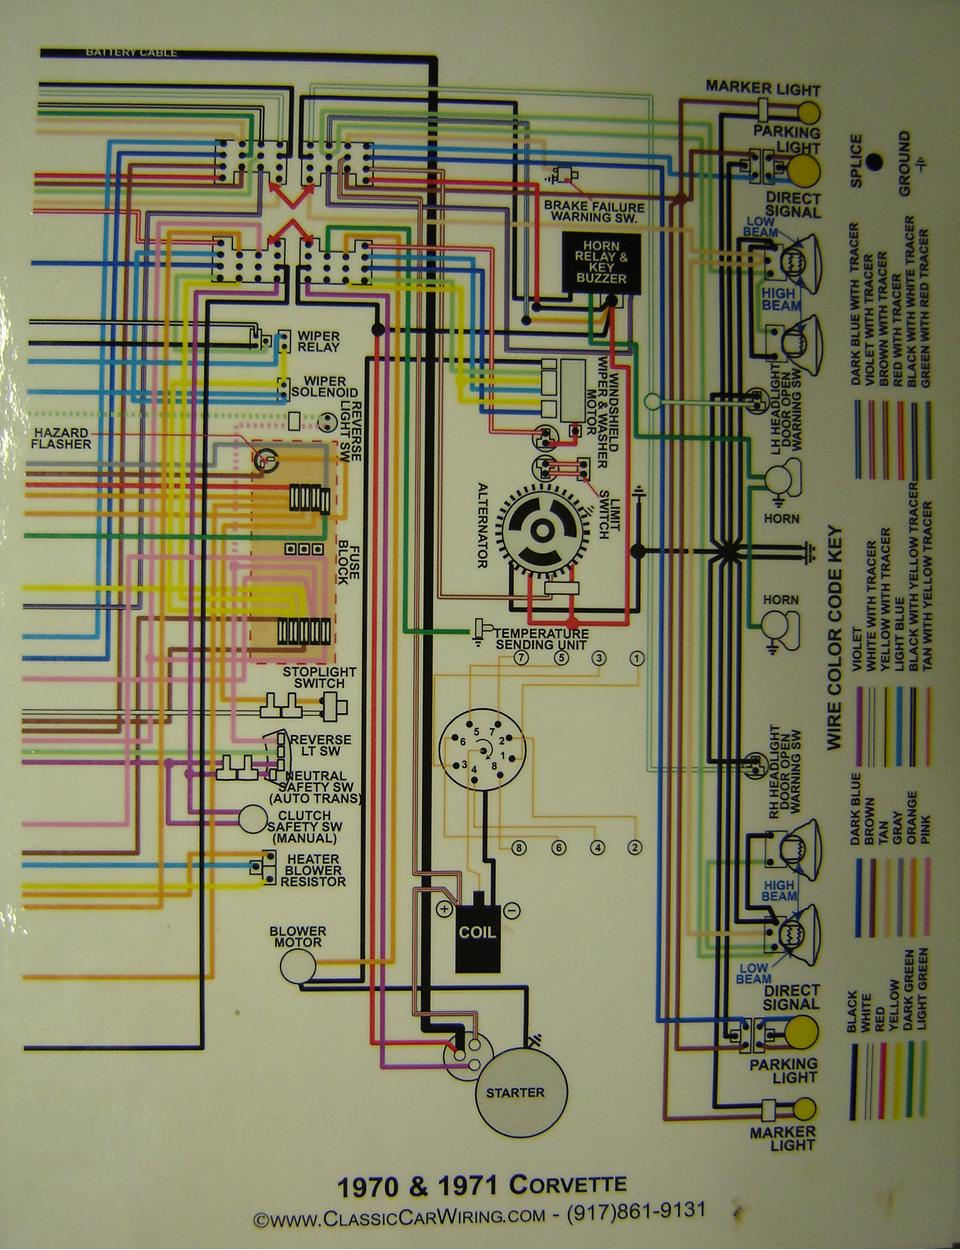 1970 71 corvette color wiring diagram B chevy diagrams corvette wiring harness at edmiracle.co